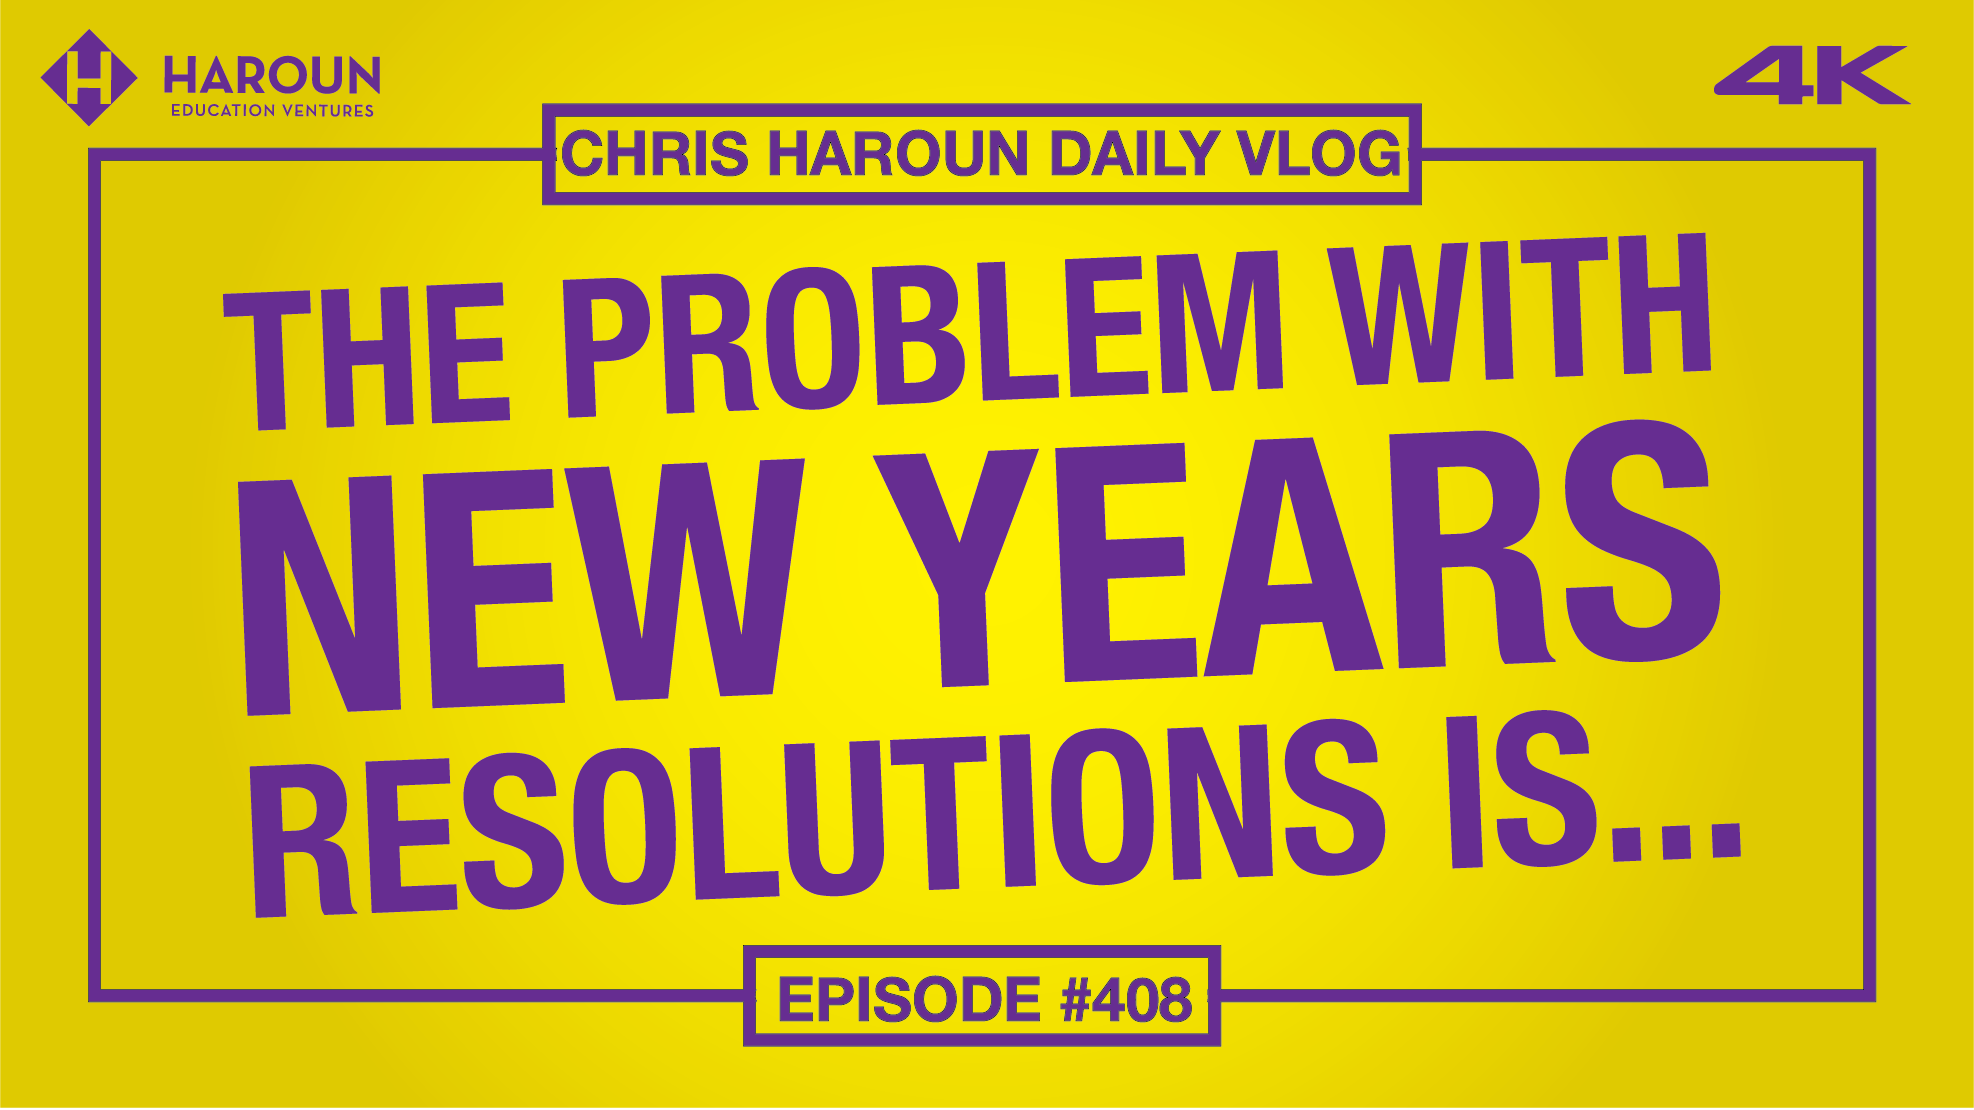 VLOG_408_9_12_2019_The Problem With New Years Resolutions is....png